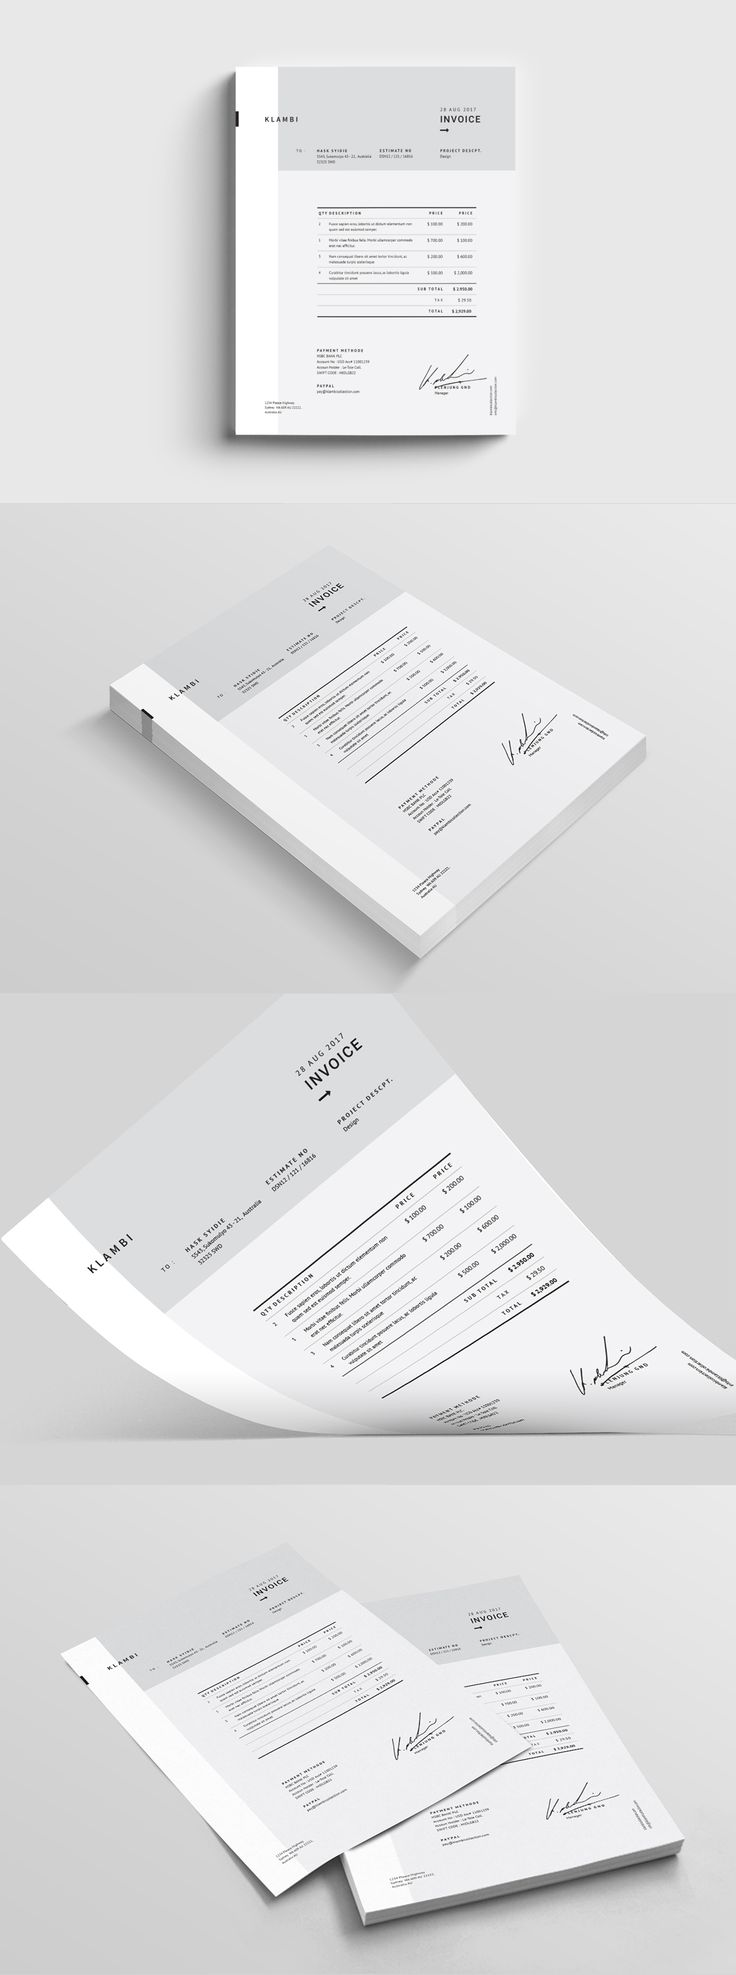 Invoice Template Indesign     hardhost info 17 best ideas about invoice template on pinterest   invoice design  Invoice  templates